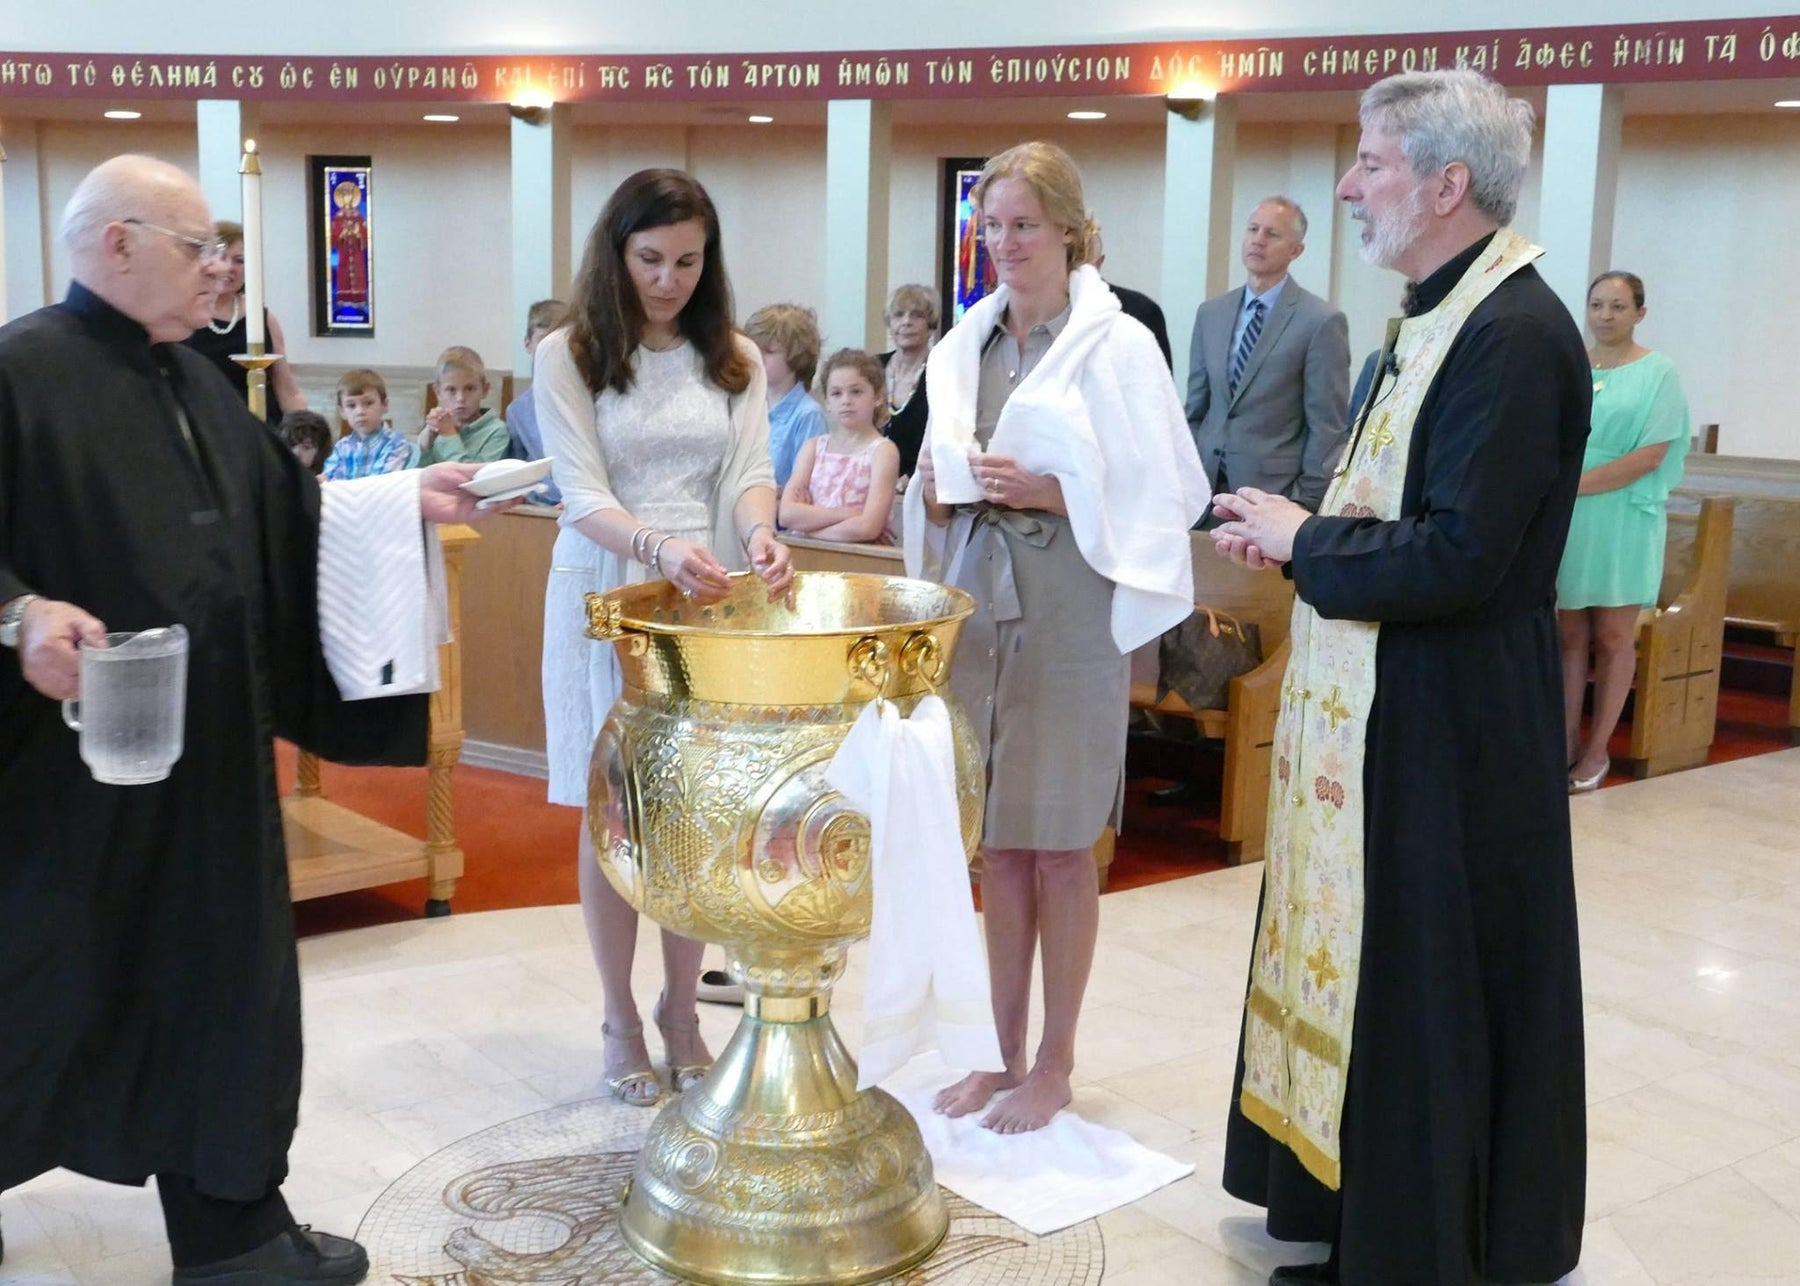 An Adult Orthodox Baptism